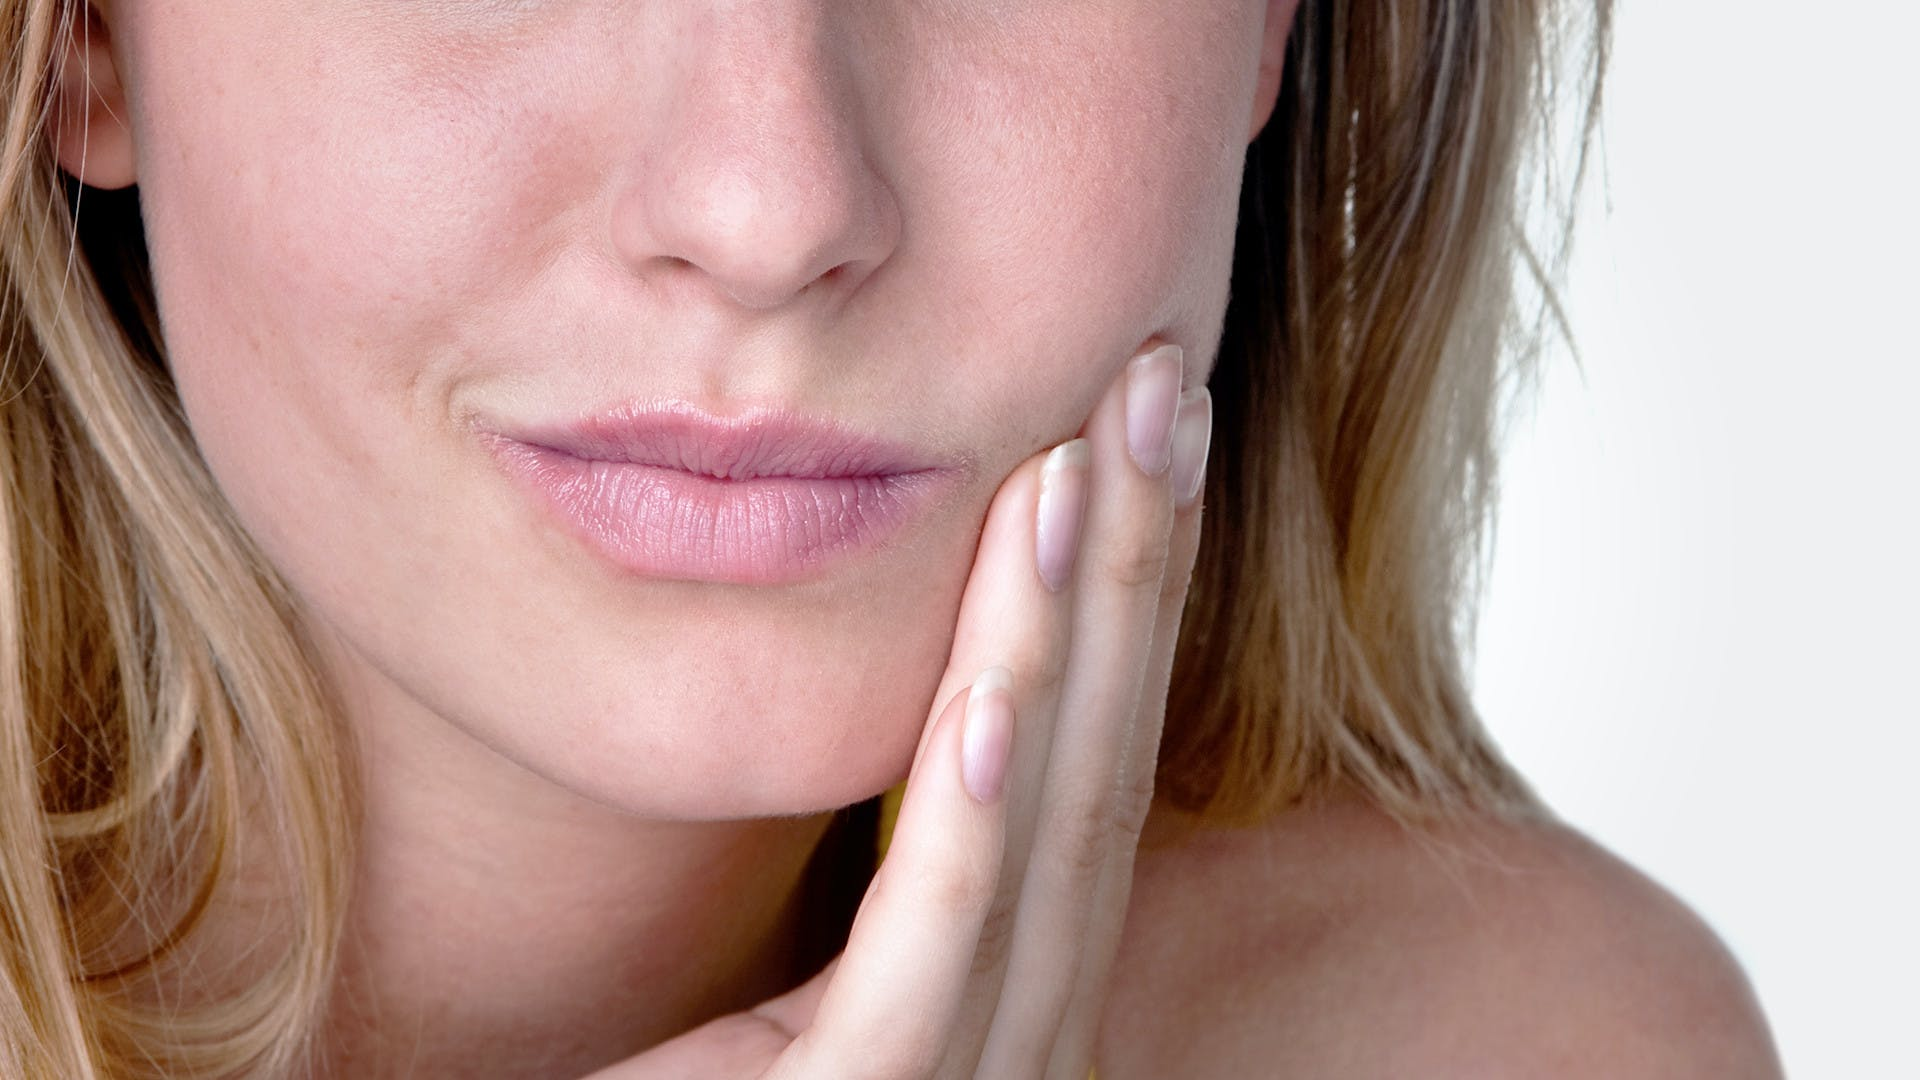 woman with mouth ulcer touching painful mouth and cheek